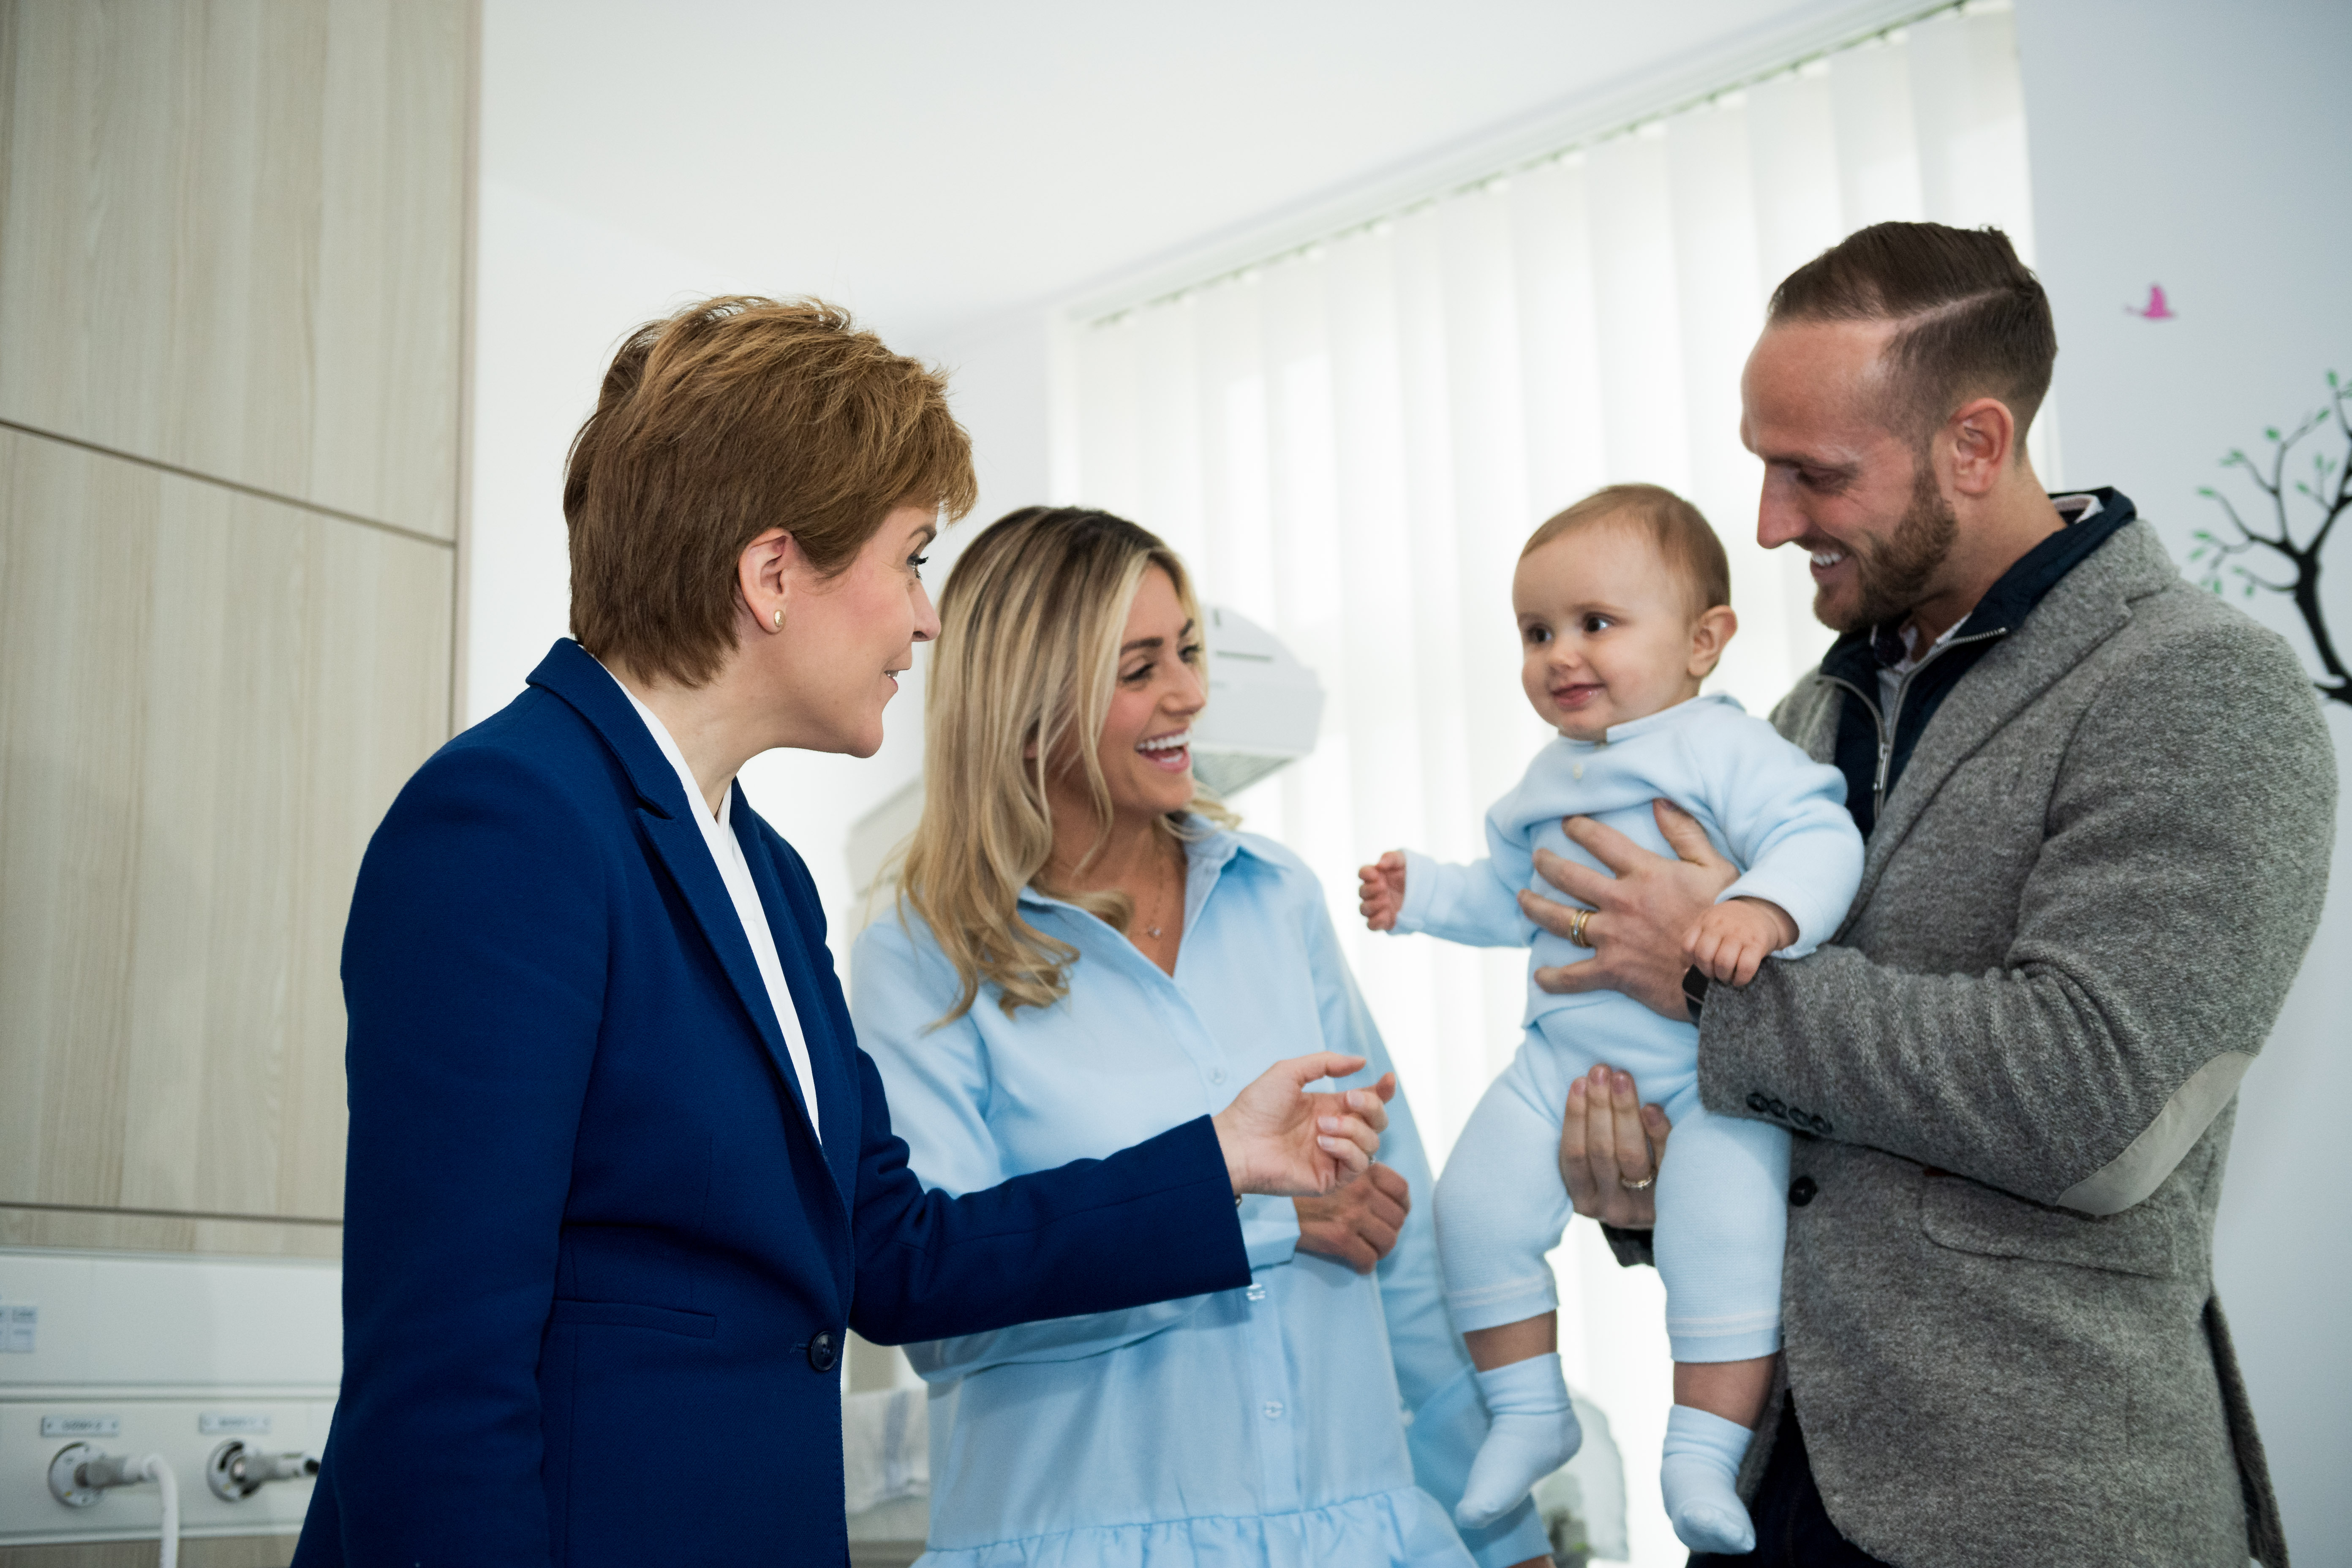 First Minister meeting the first baby born in the new maternity ward, from left is Nicola Sturgeon, Cruz Smith and his parents Yolanda and Jonn Smith.